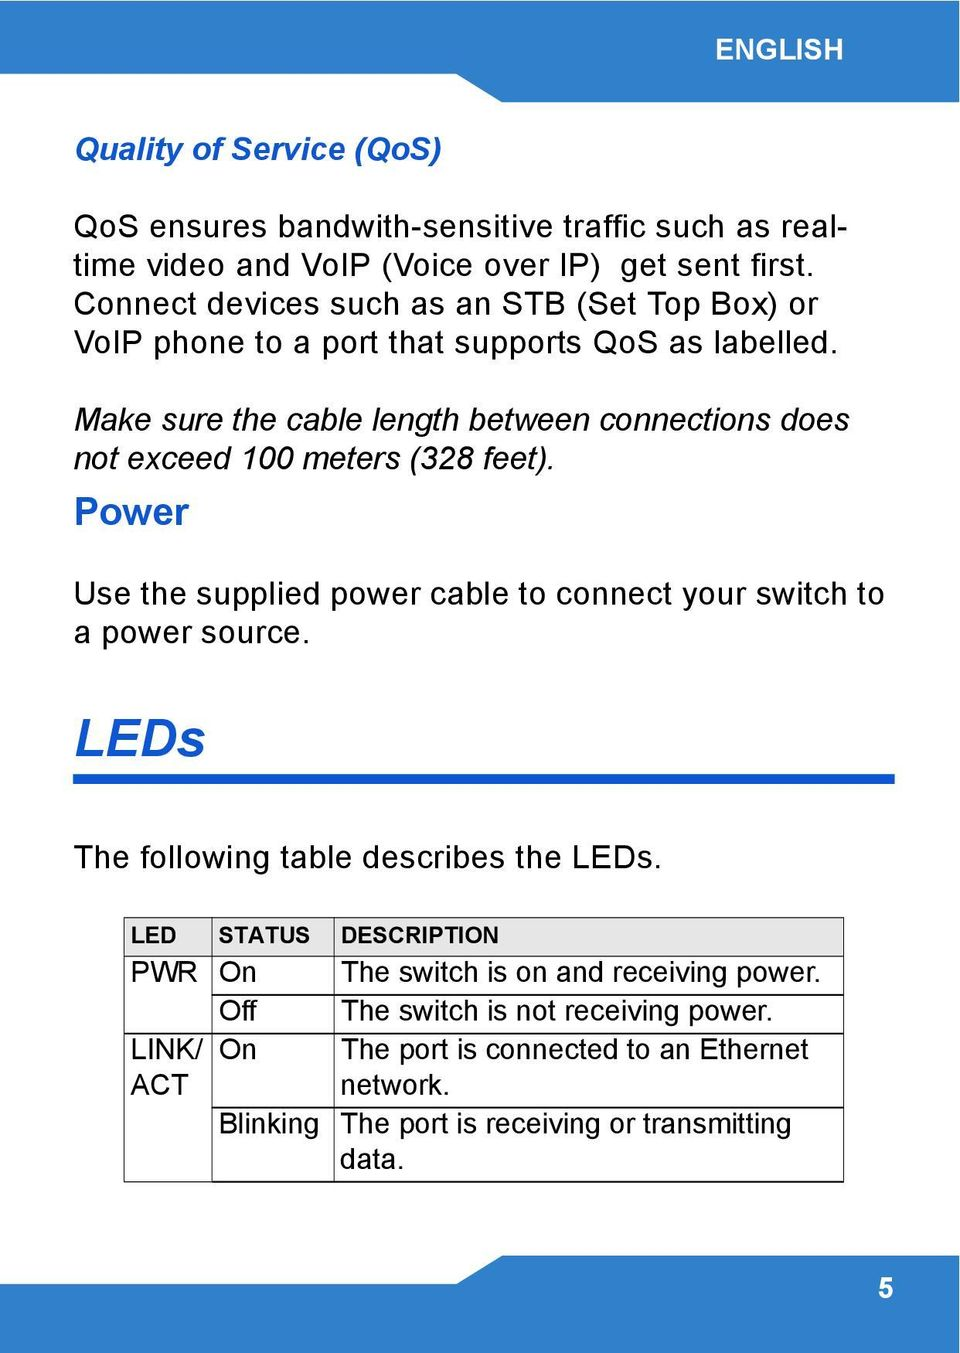 Make sure the cable length between connections does not exceed 100 meters (328 feet). Power Use the supplied power cable to connect your switch to a power source.